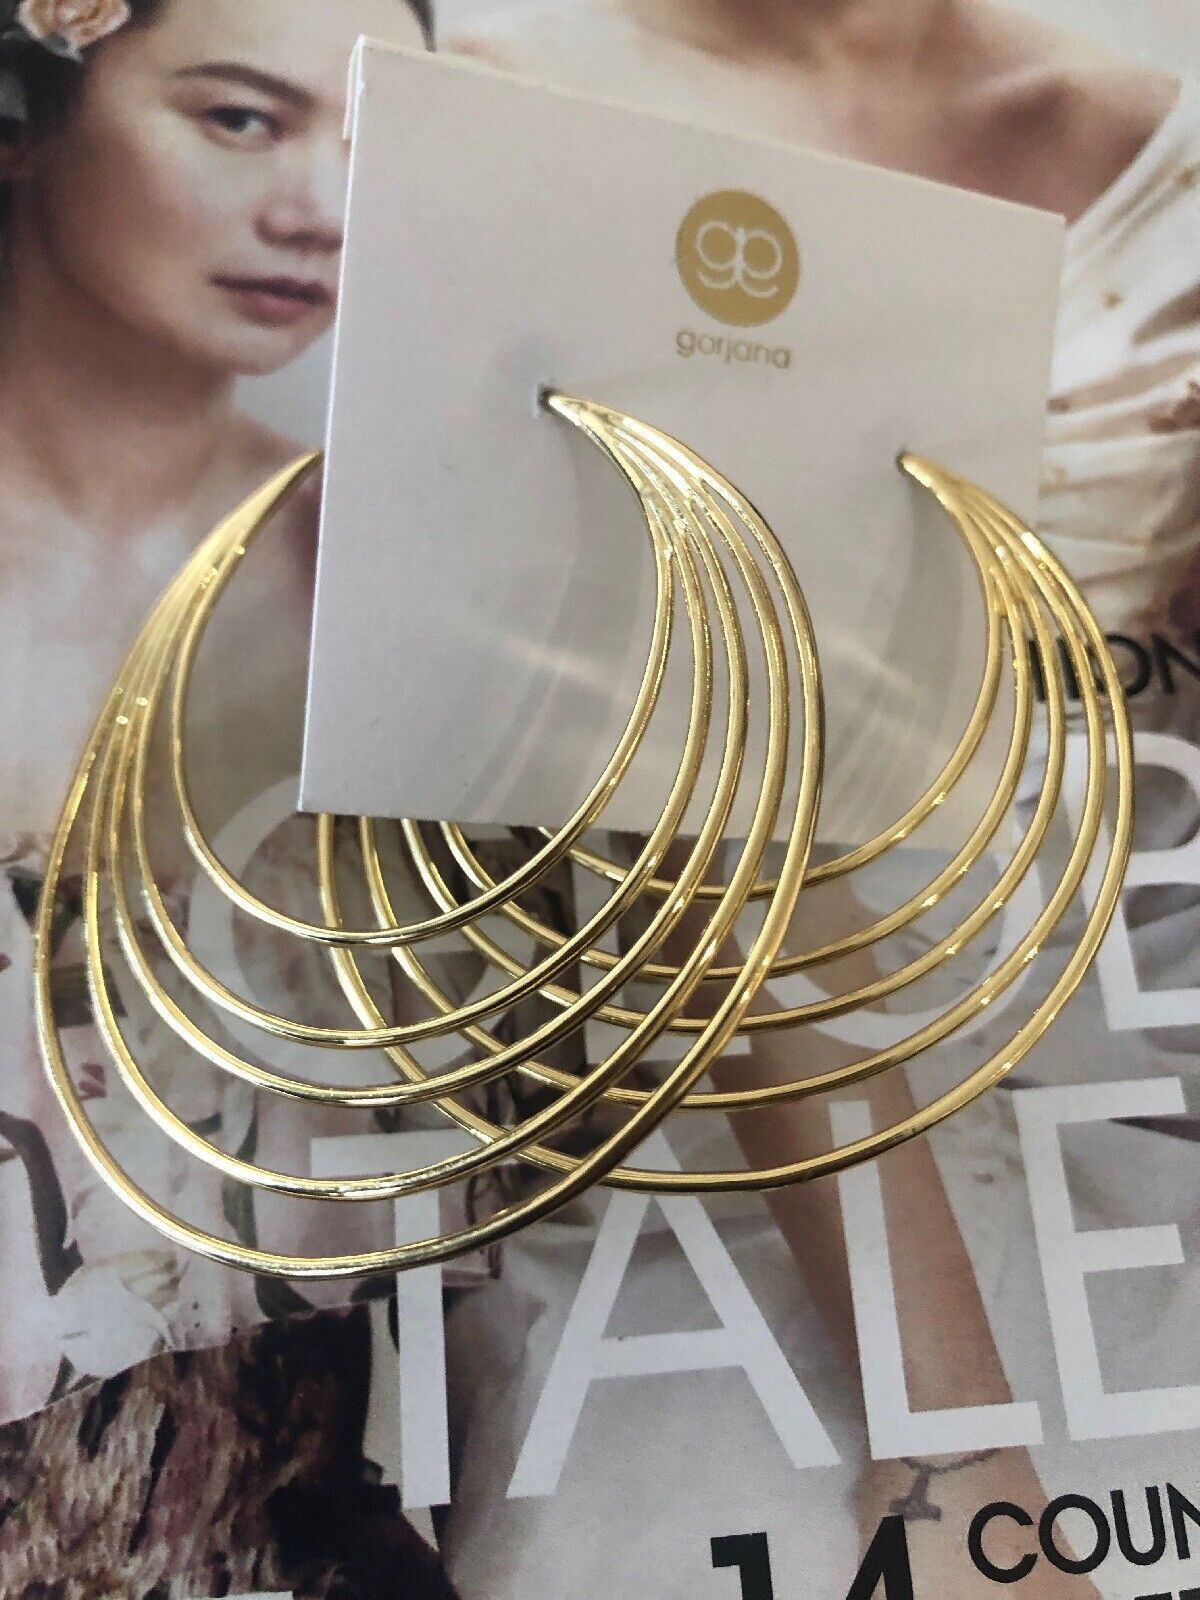 "Gorjana Large 18 K Plated HOOP Earrings 2.75"". New RET 79.00 Plus"